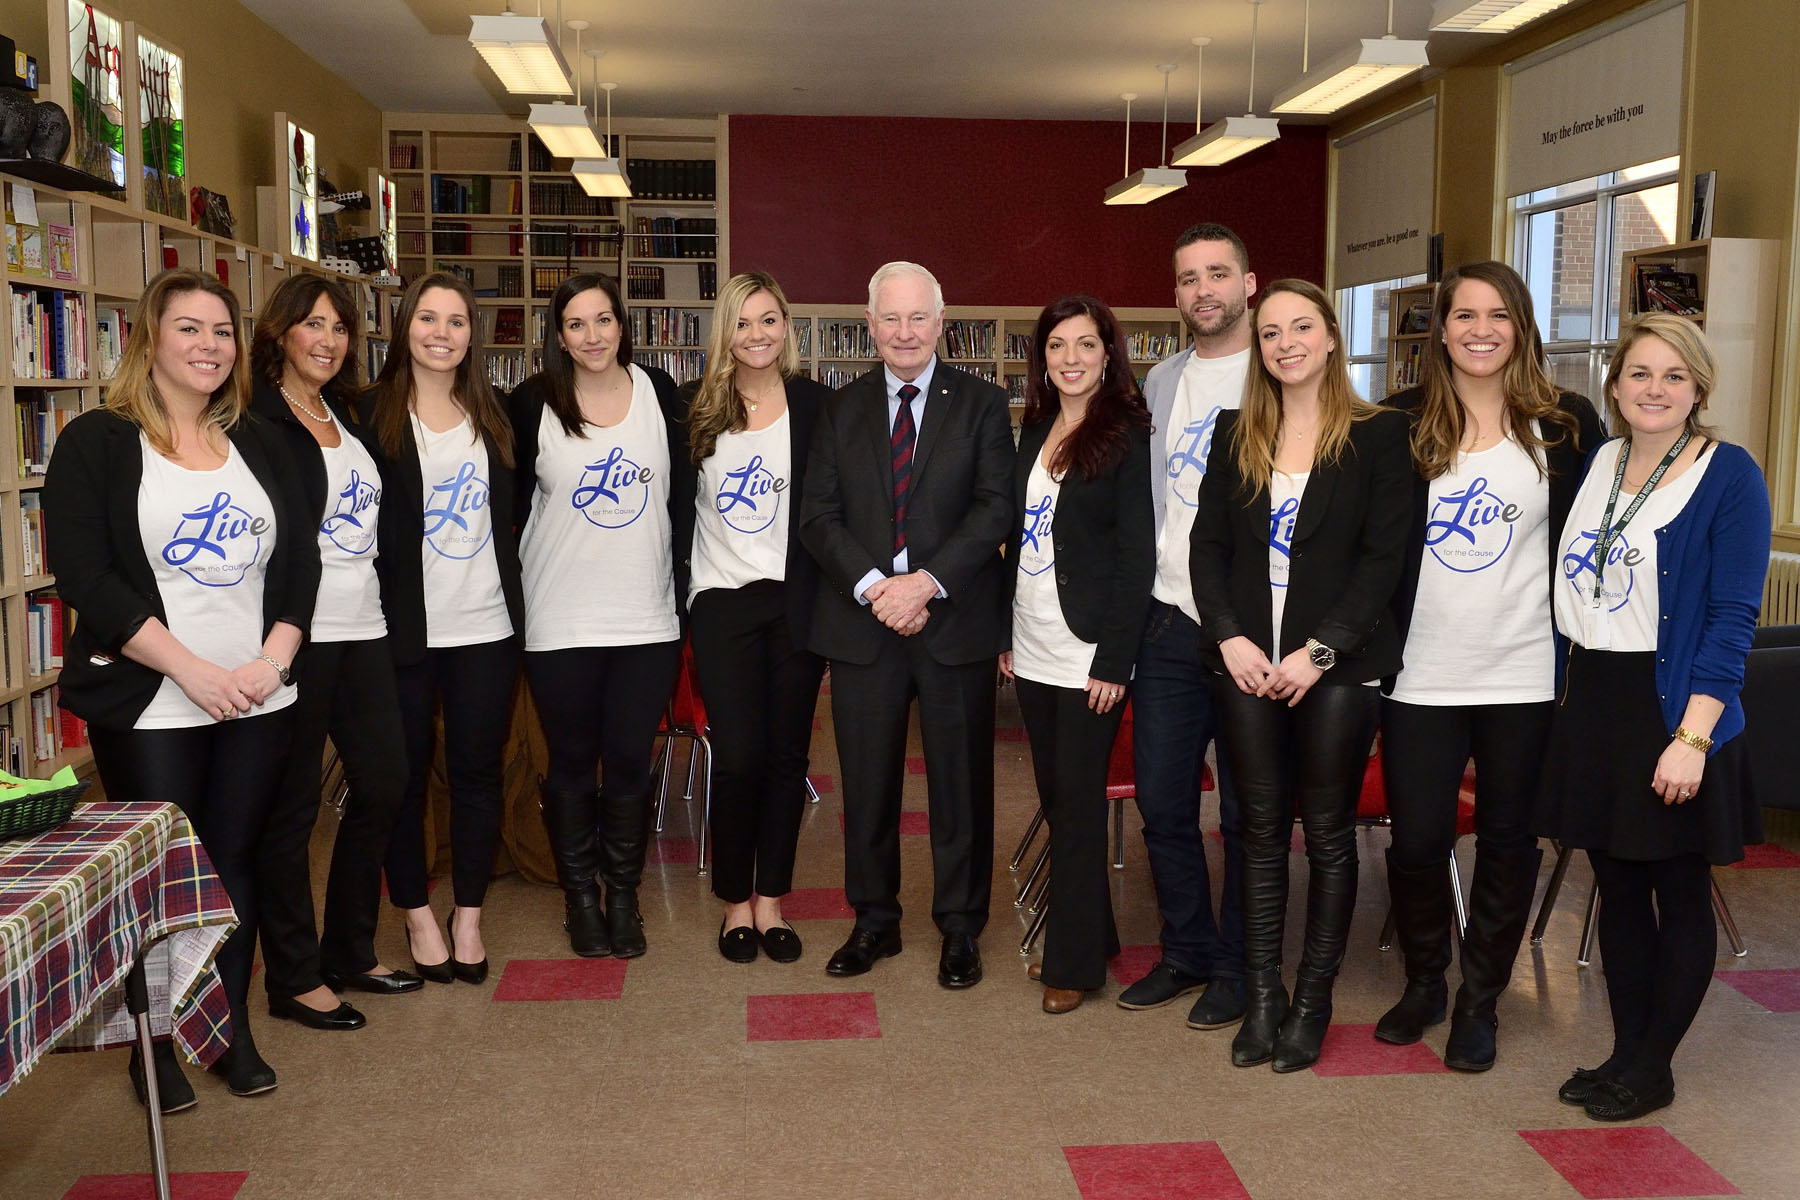 His Excellency the Right Honourable David Johnston, Governor General of Canada, met with volunteers from Live for the Cause, a foundation dedicated to engaging people of all ages on the importance of volunteering and philanthropy.